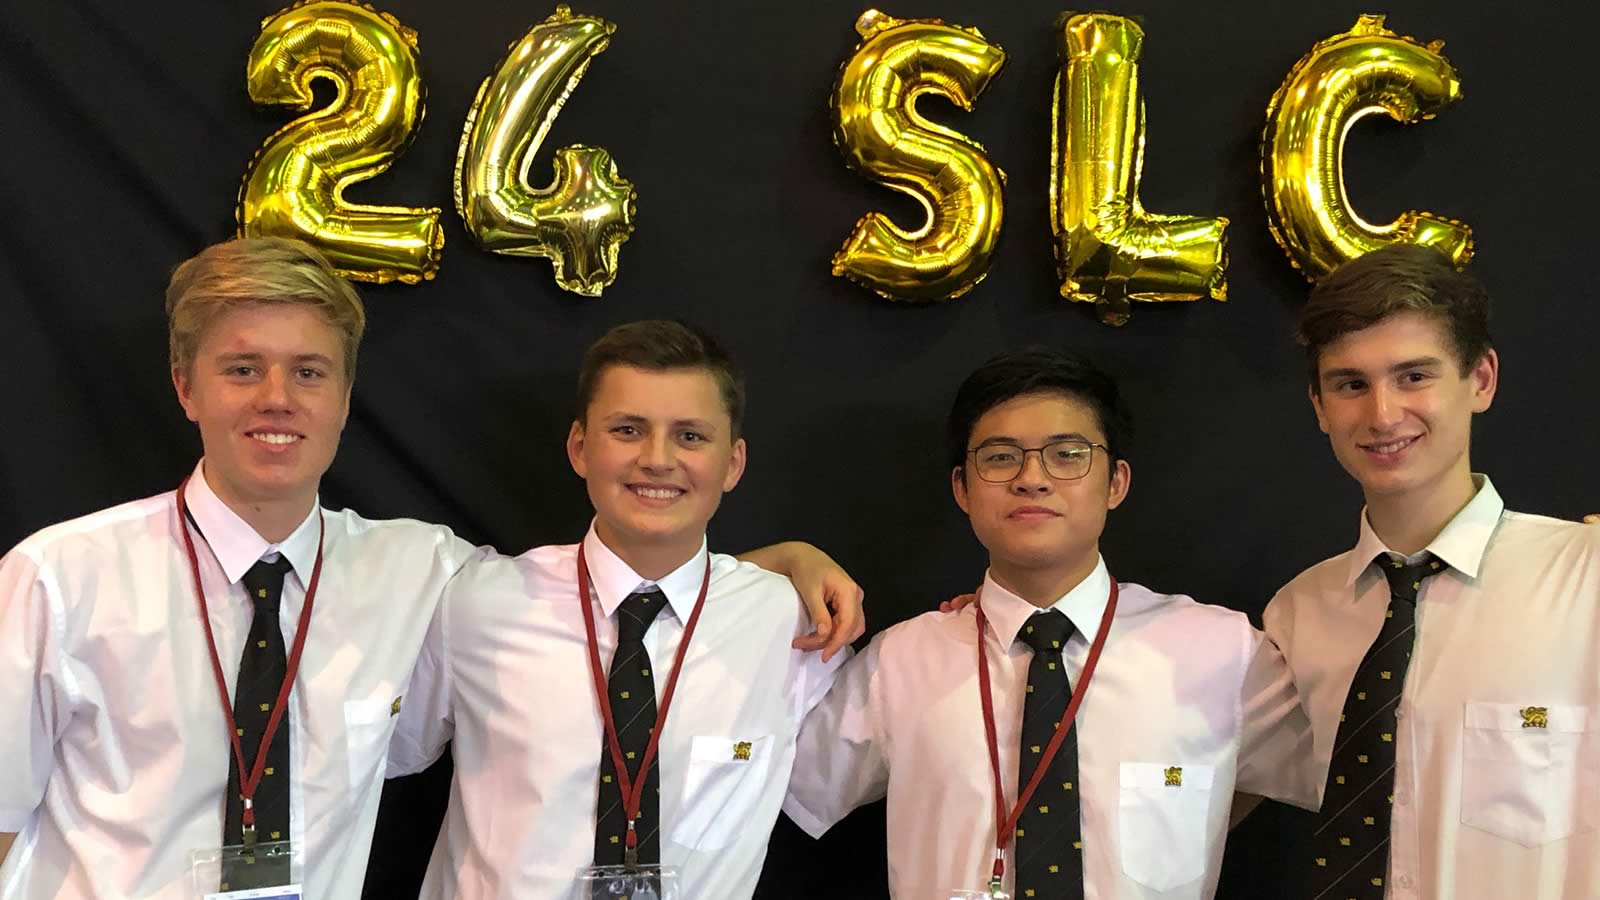 Year 11 students Luca Gentile, Jackson Coad, Johnathan Lau and Robert Elkerton.